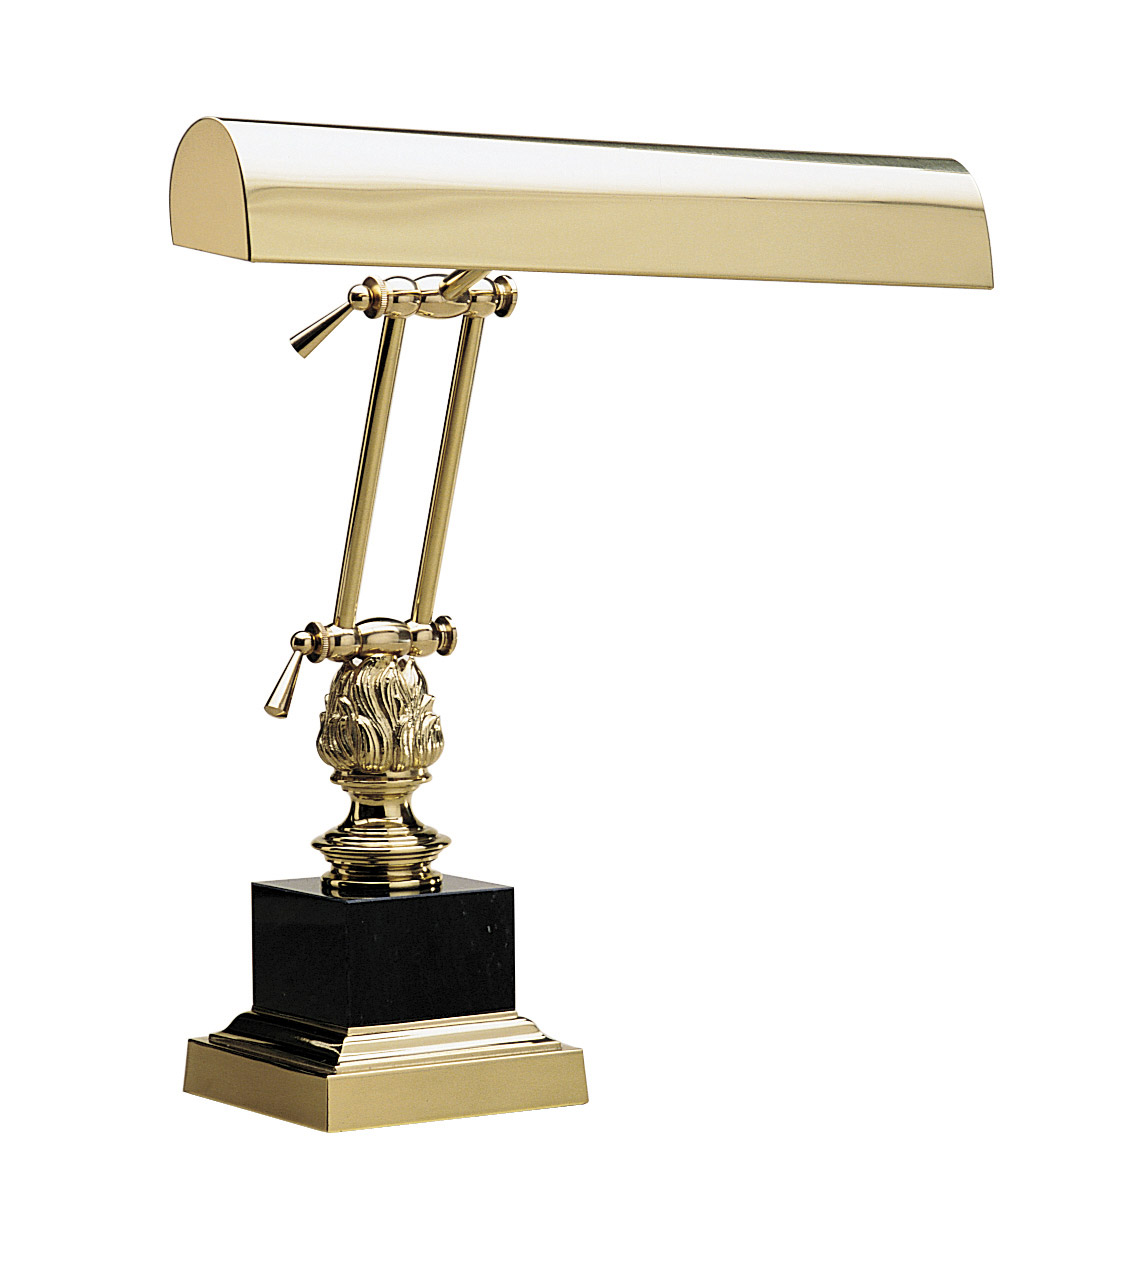 house of troy p14 246 piano lamp